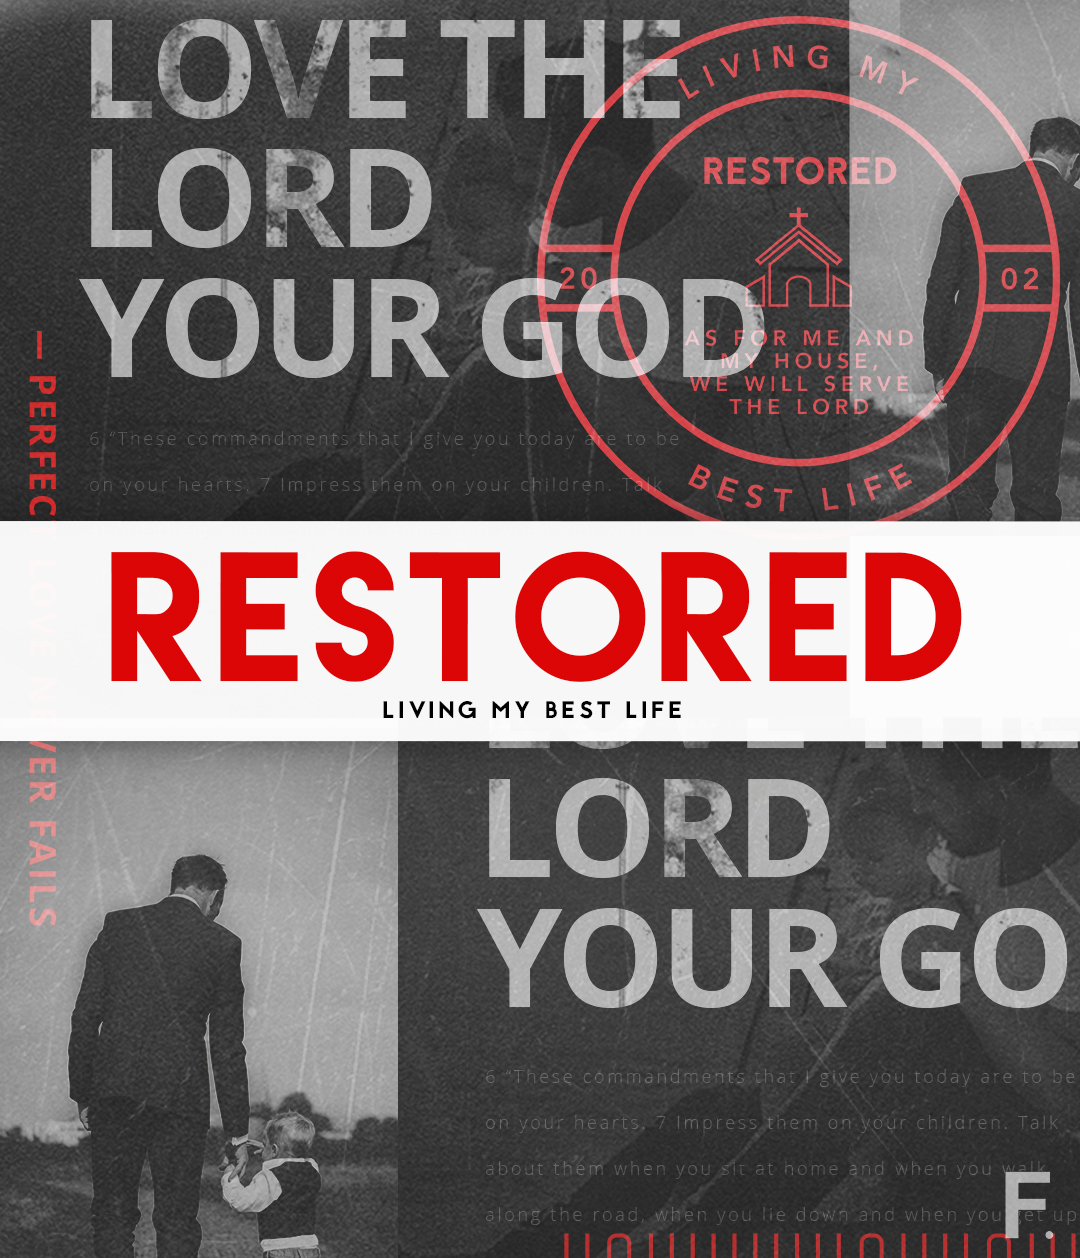 Restored_Insta_Love the Lord.jpg